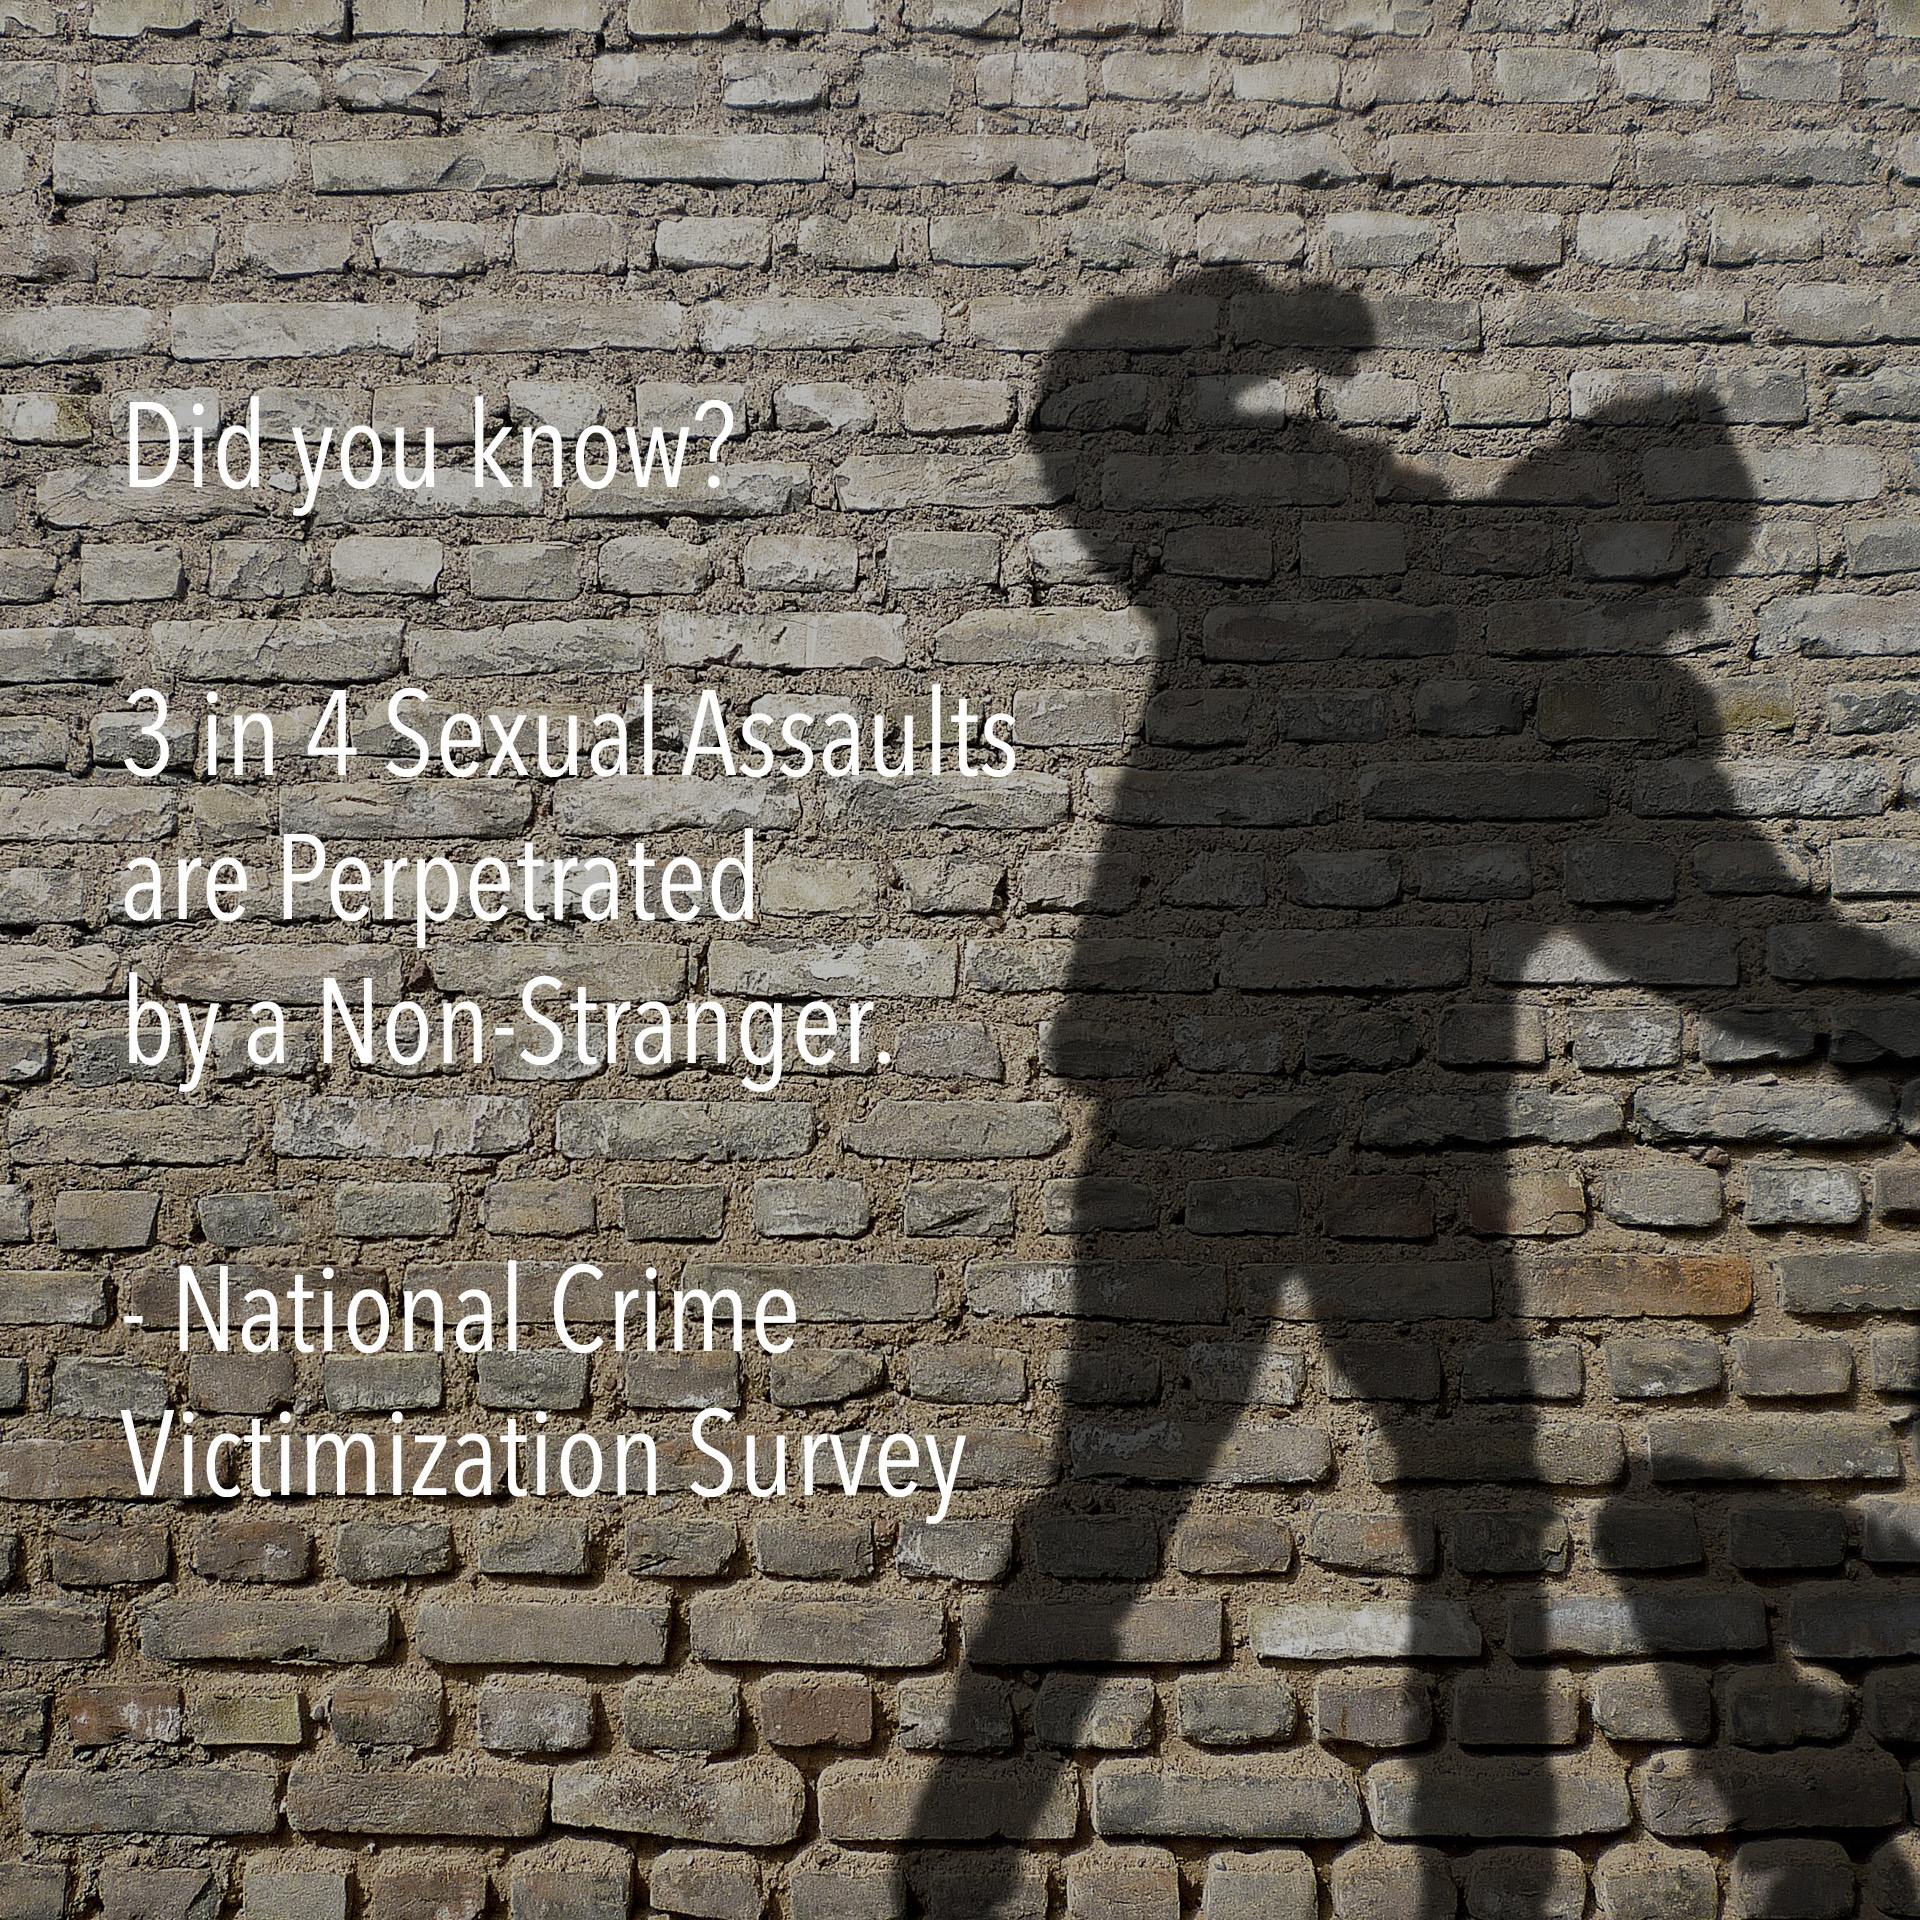 Did you know? 3 in 4 Sexual Assaults are Perpetrated by a Non-Stranger. - National Crime Victimization Survey